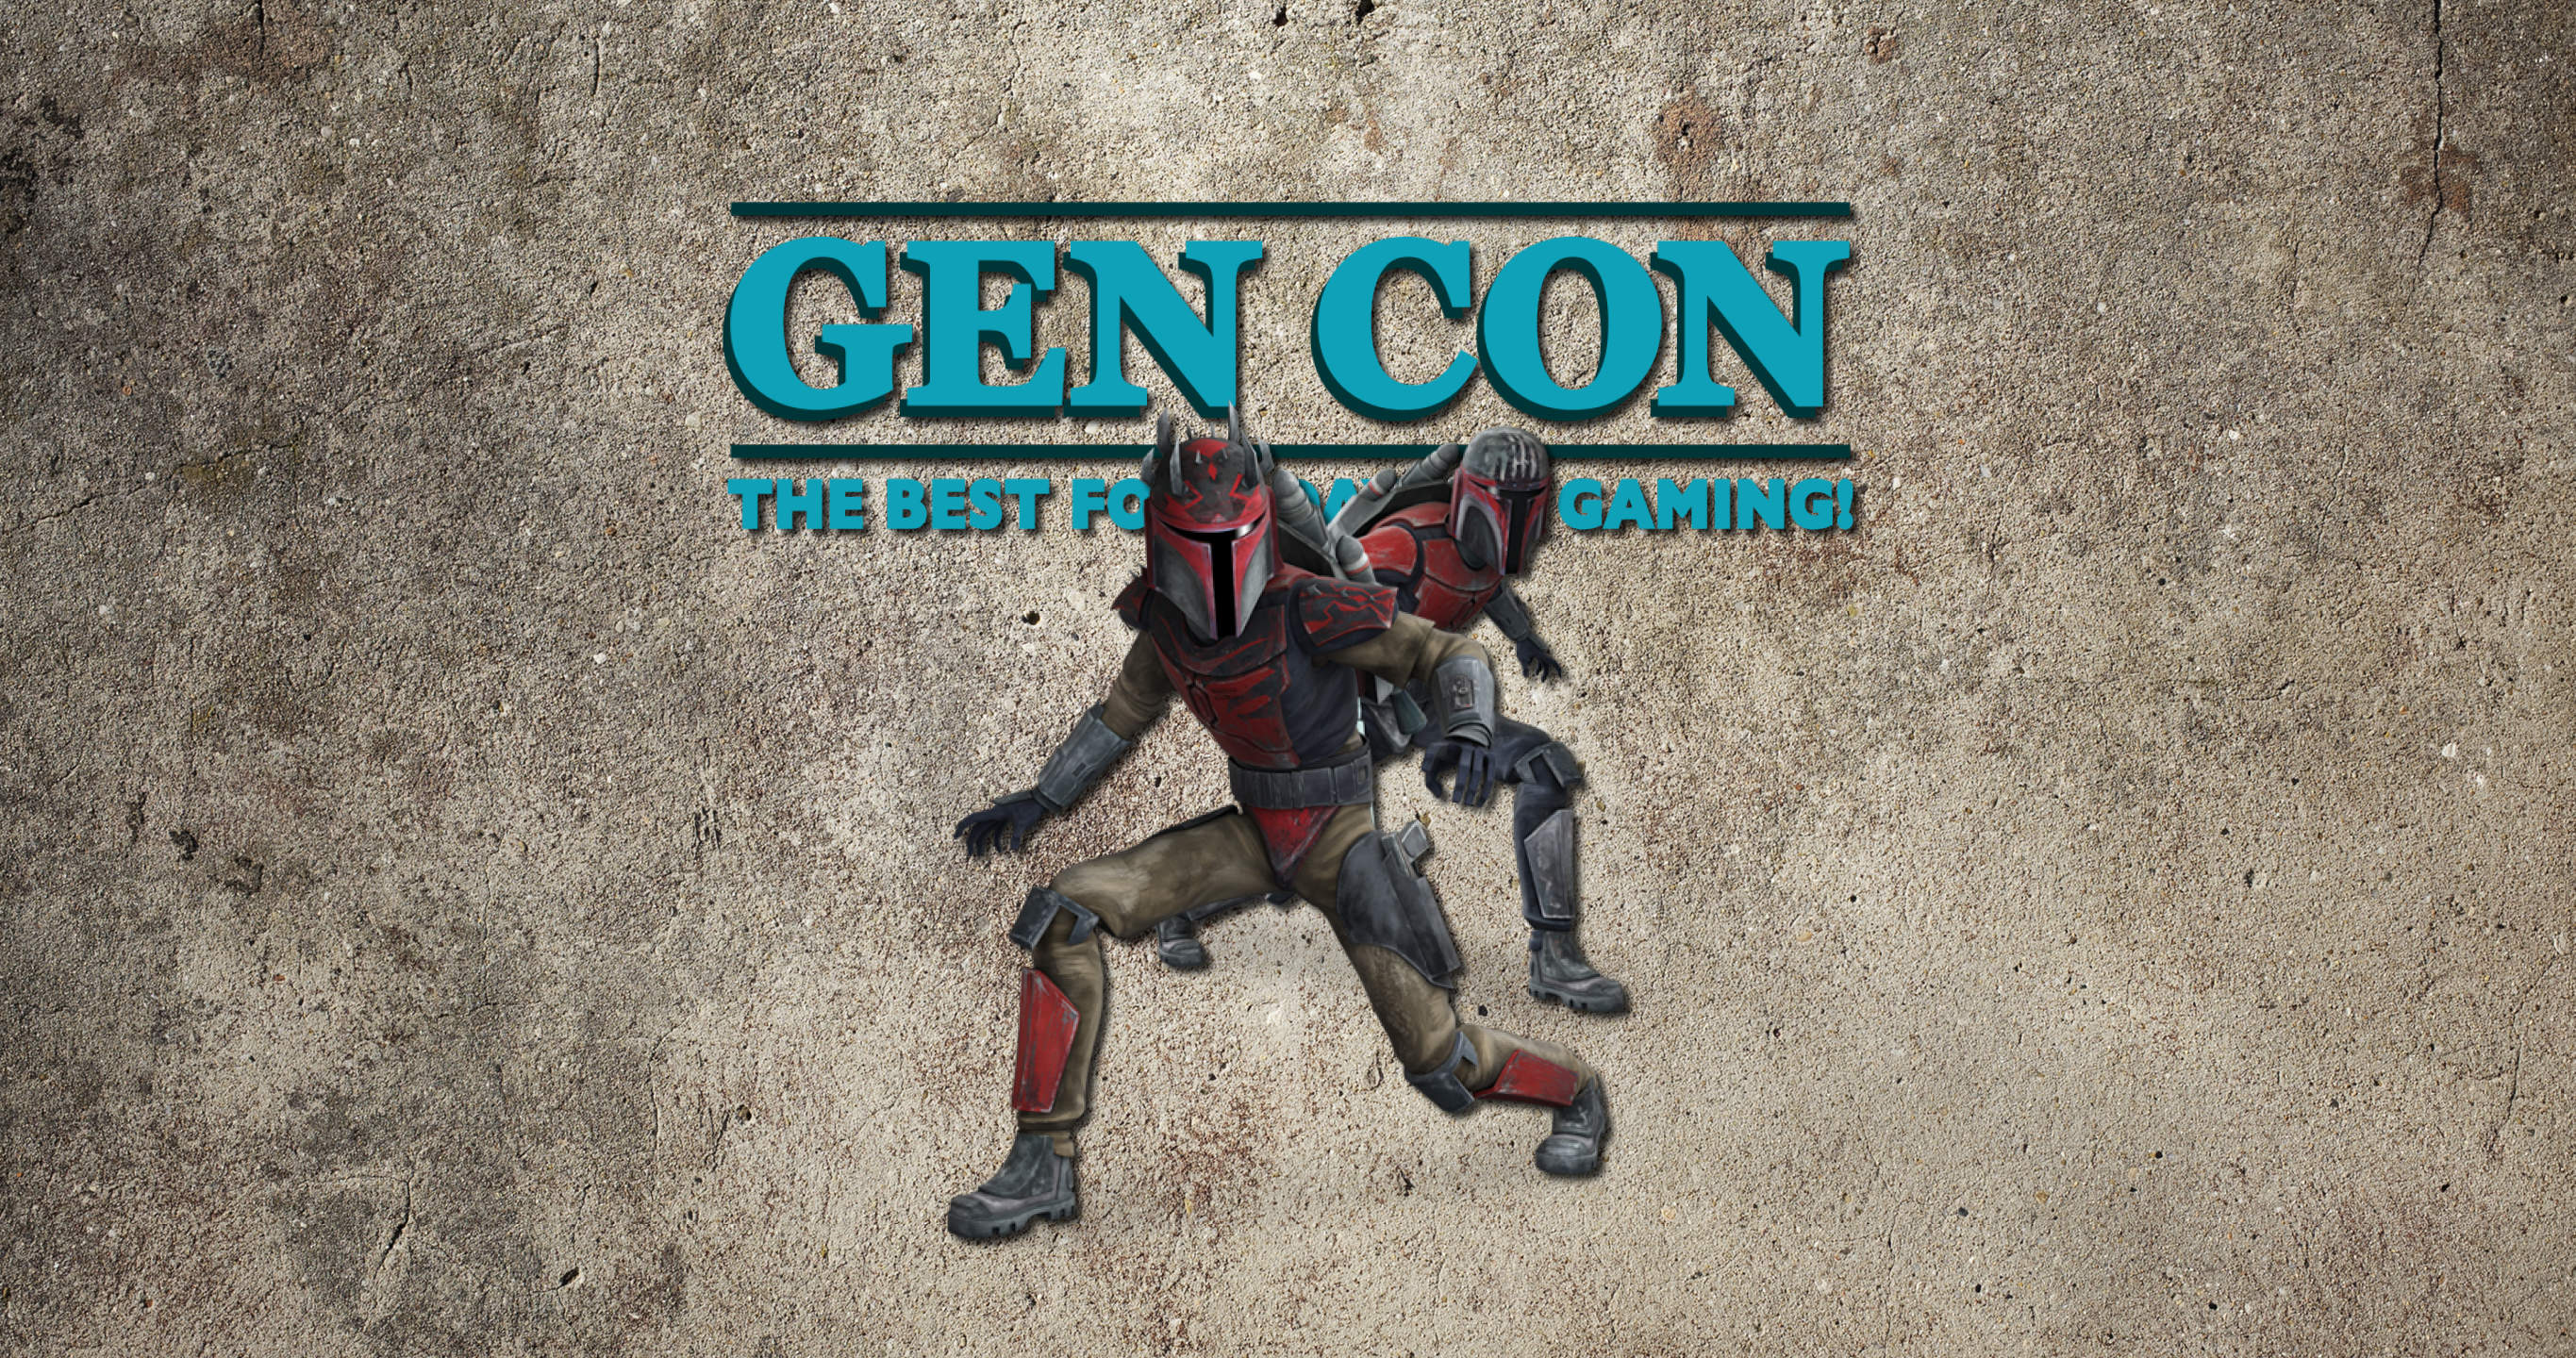 Tournament Report - GEN CON 2018